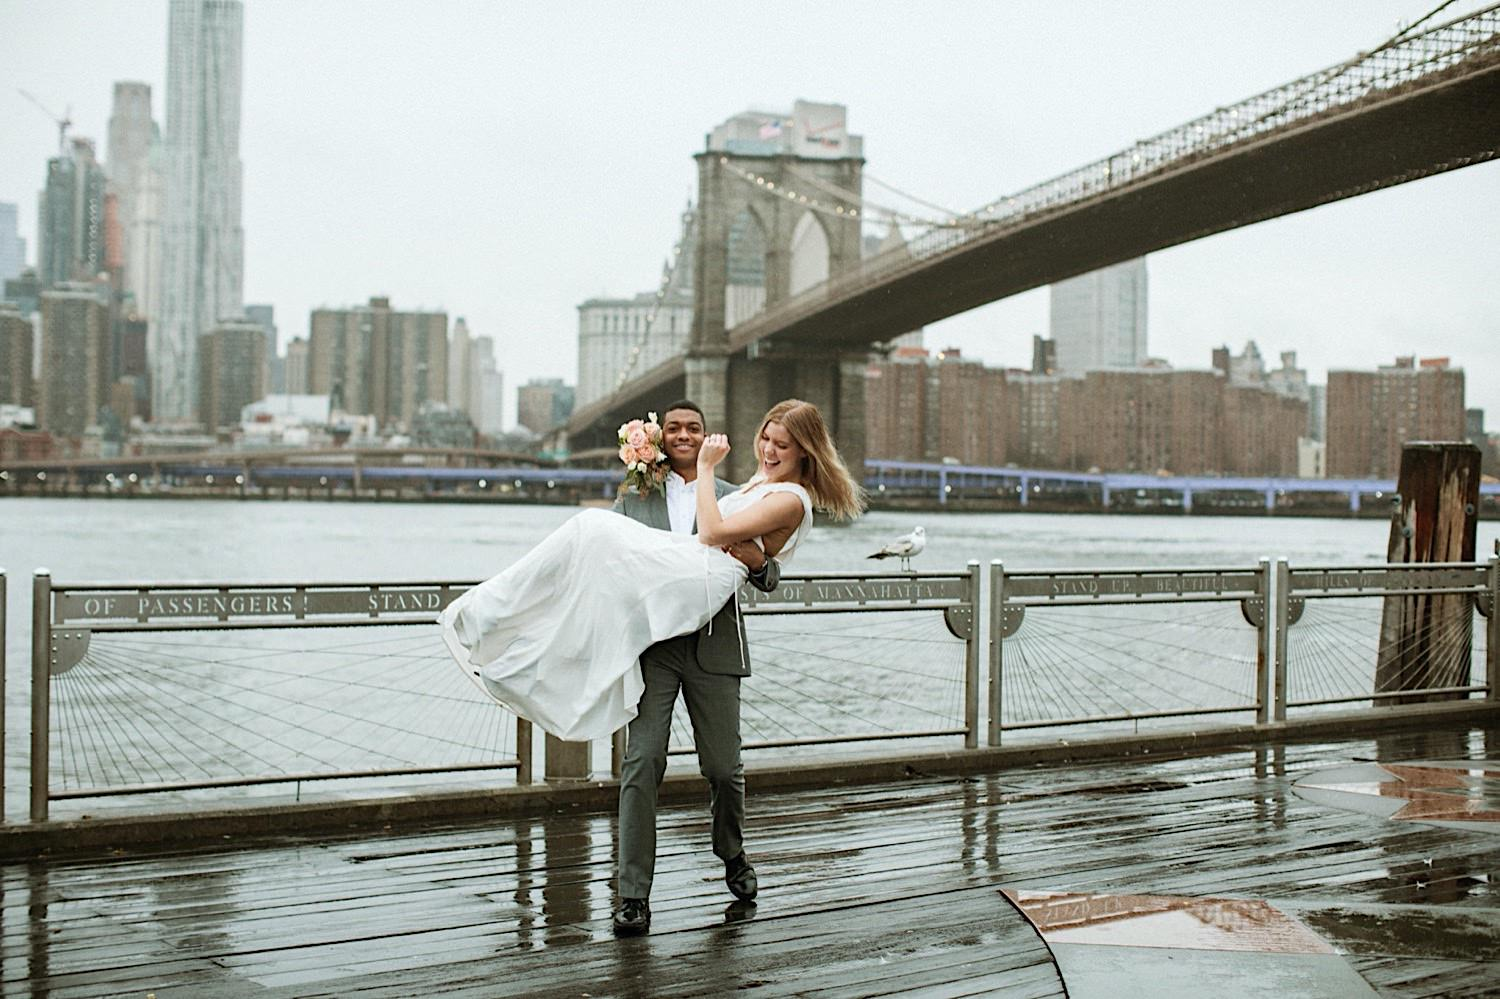 DUMBO Wedding - Groom carries bride on pier with the Brooklyn Bridge as backdrop